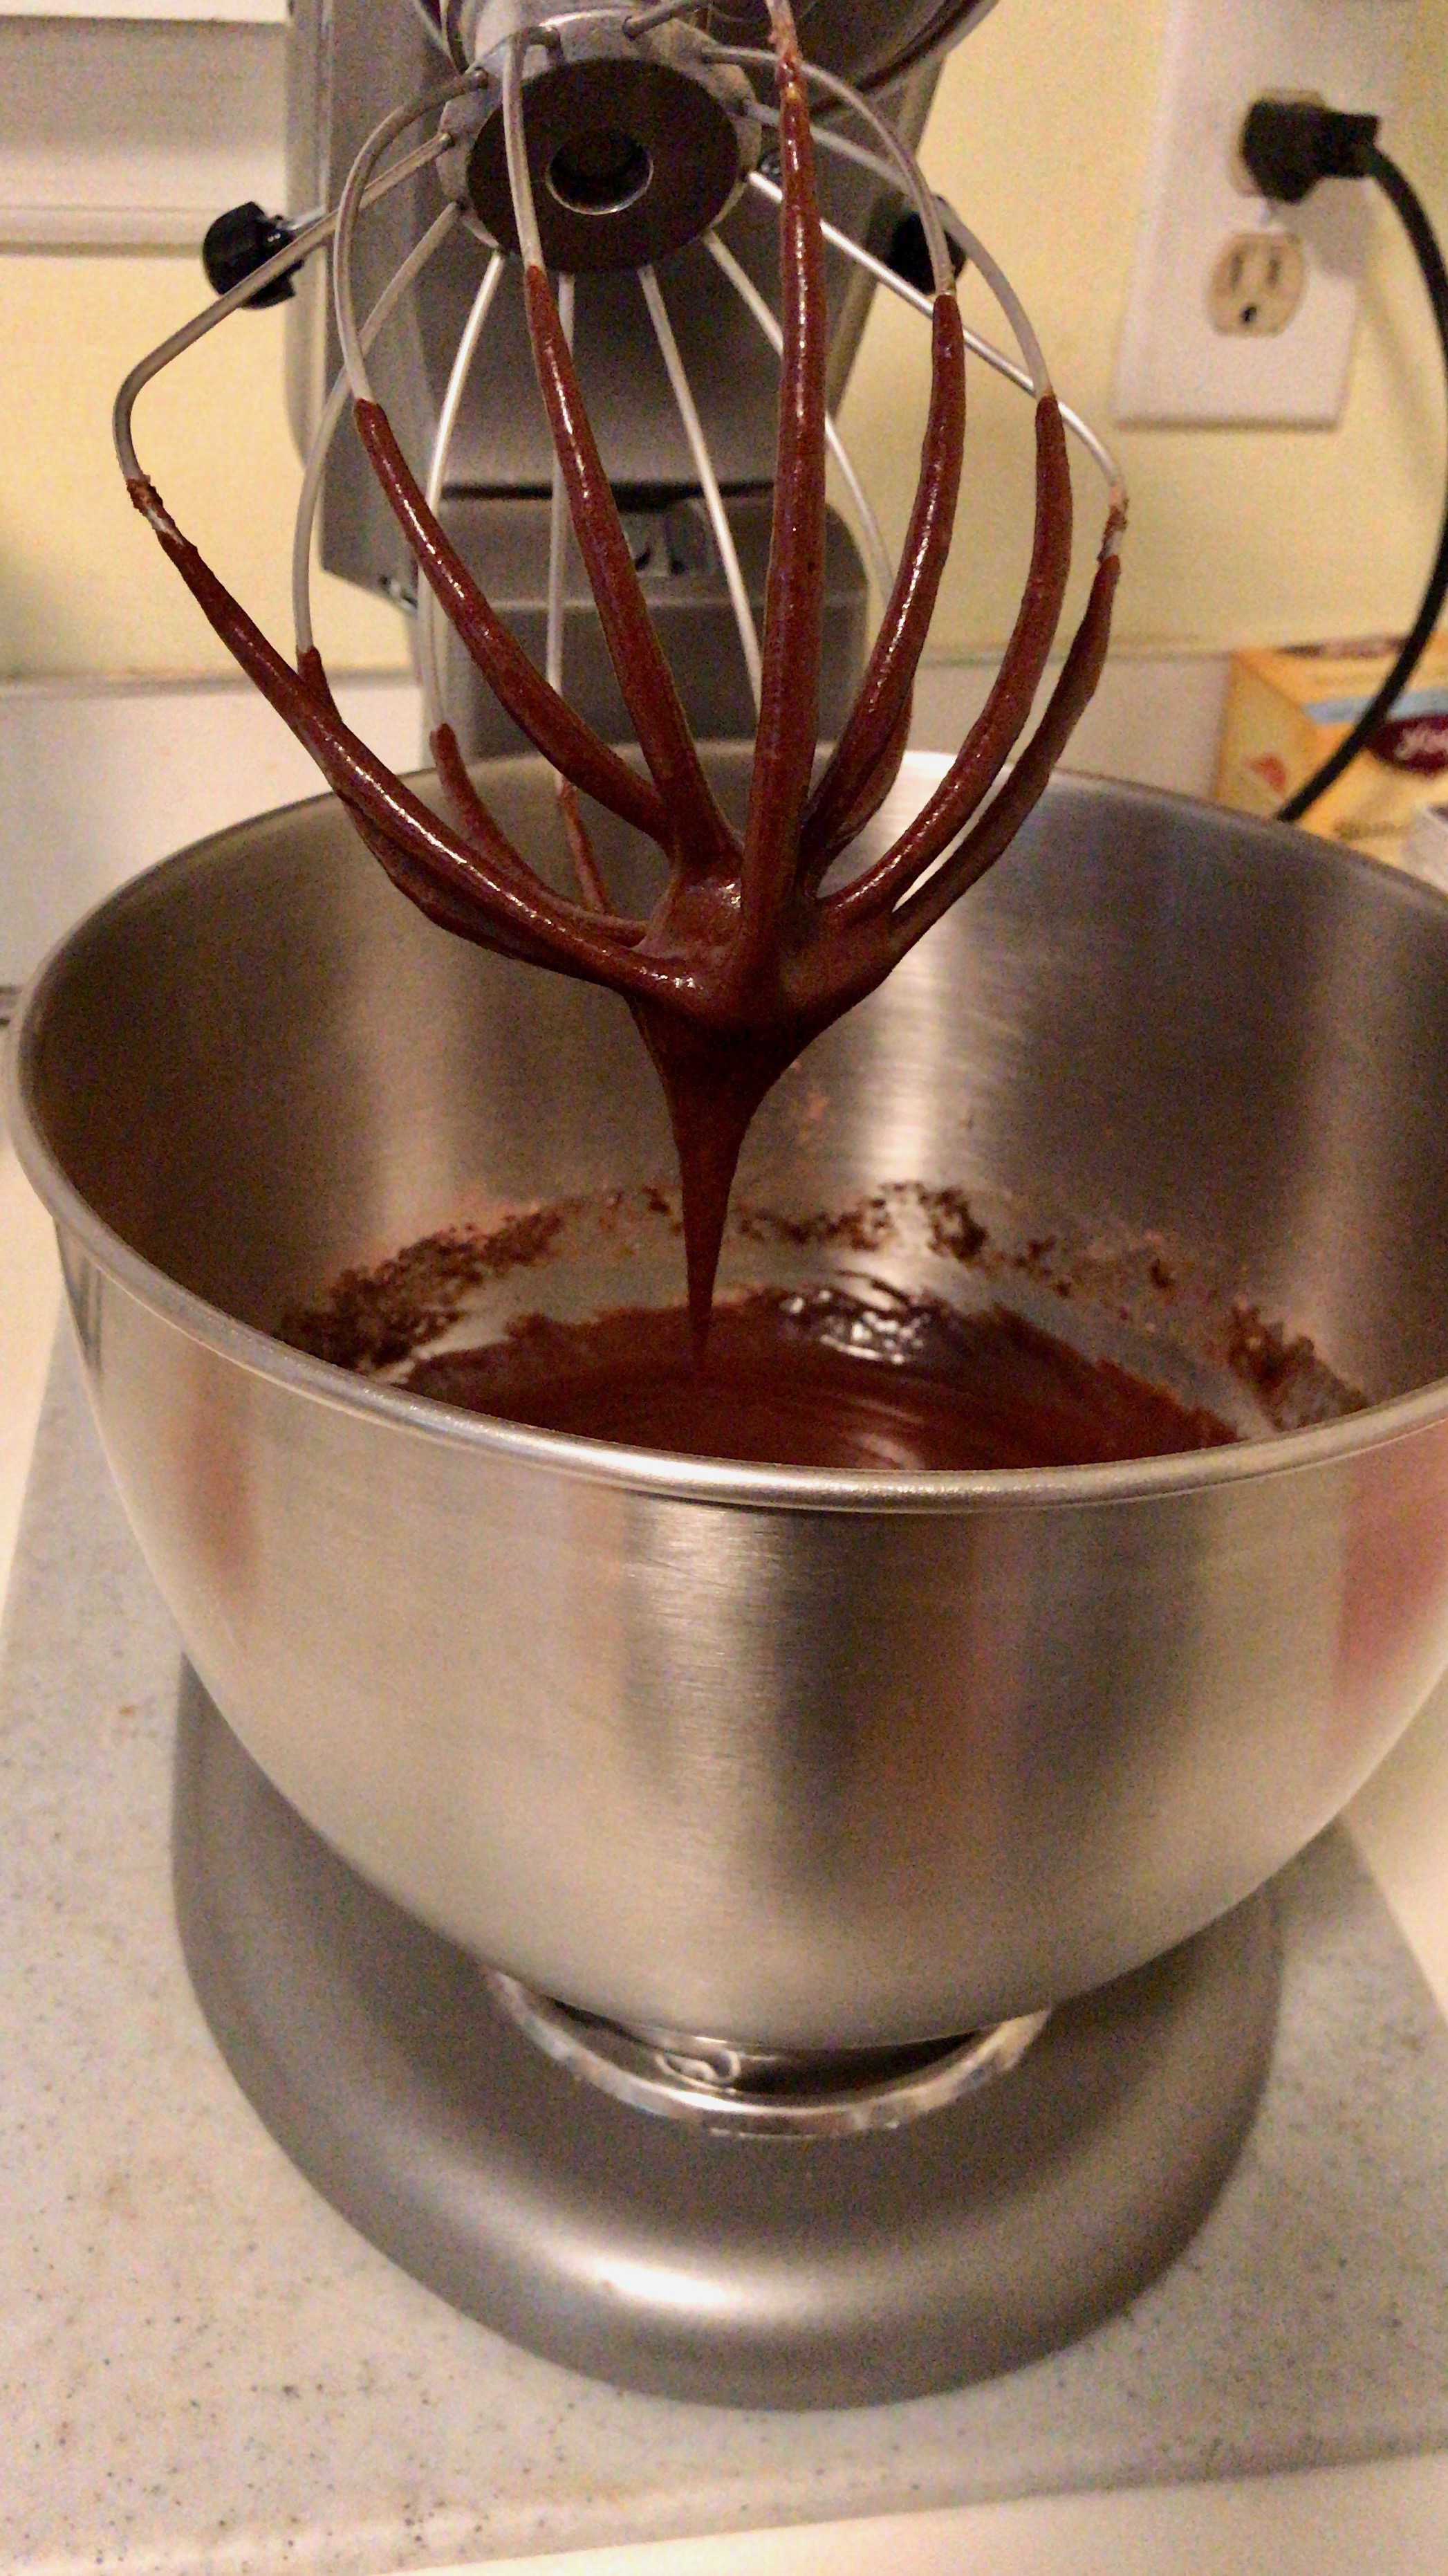 Brownie batter on a mixer